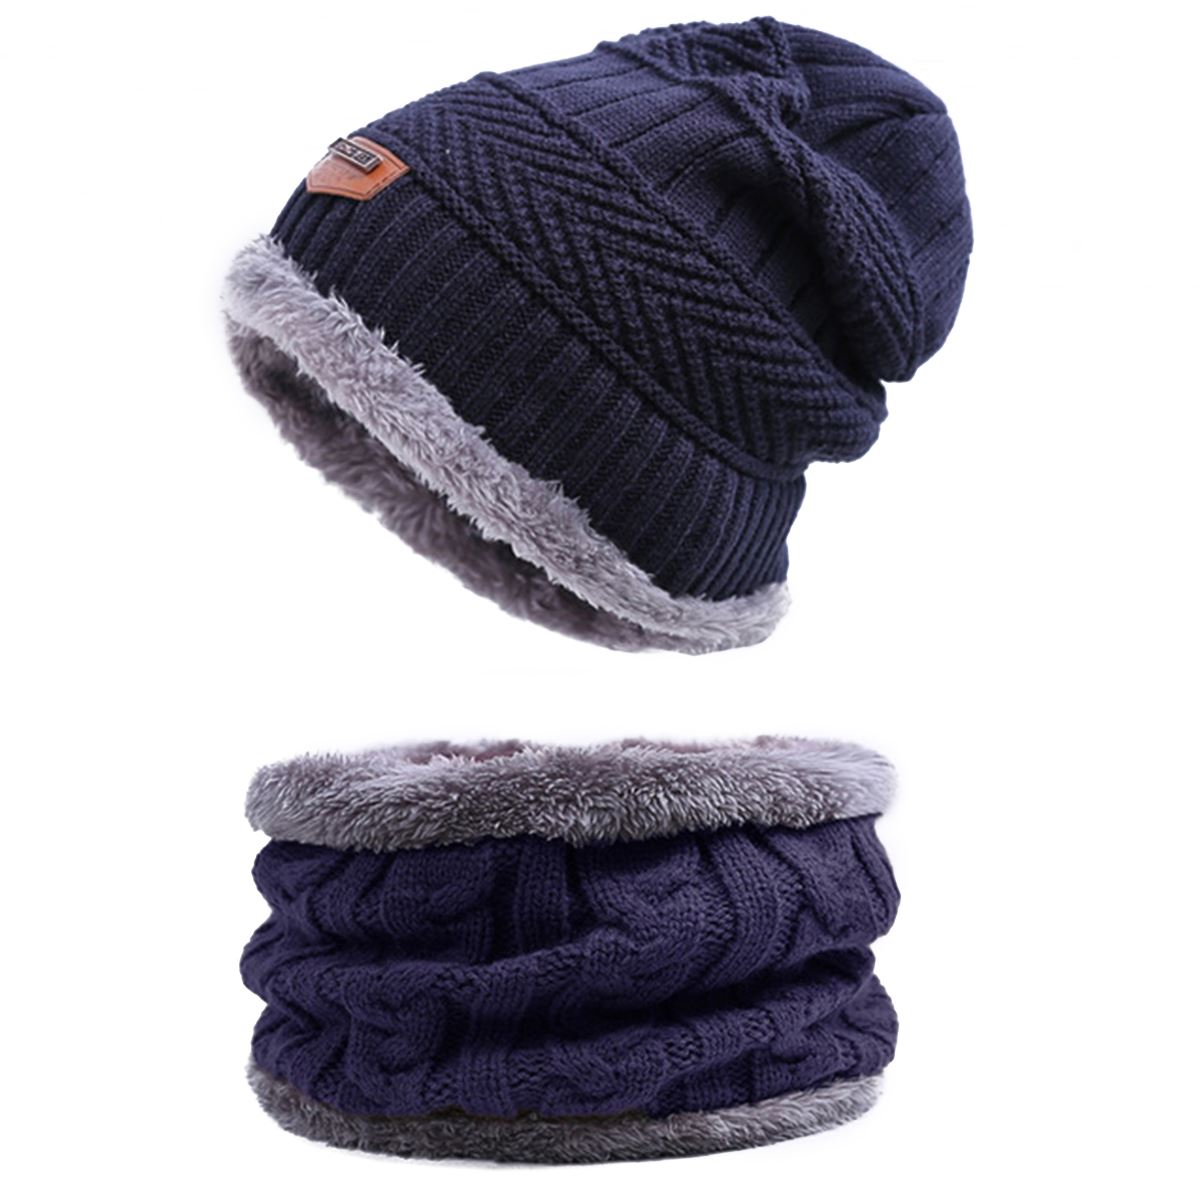 4a1c6f045d0d URDIAMOND Winter Hat Scarf Set Men Unisex 6 Colors Knitting Hat Scarf Set  Warm Wool Cap